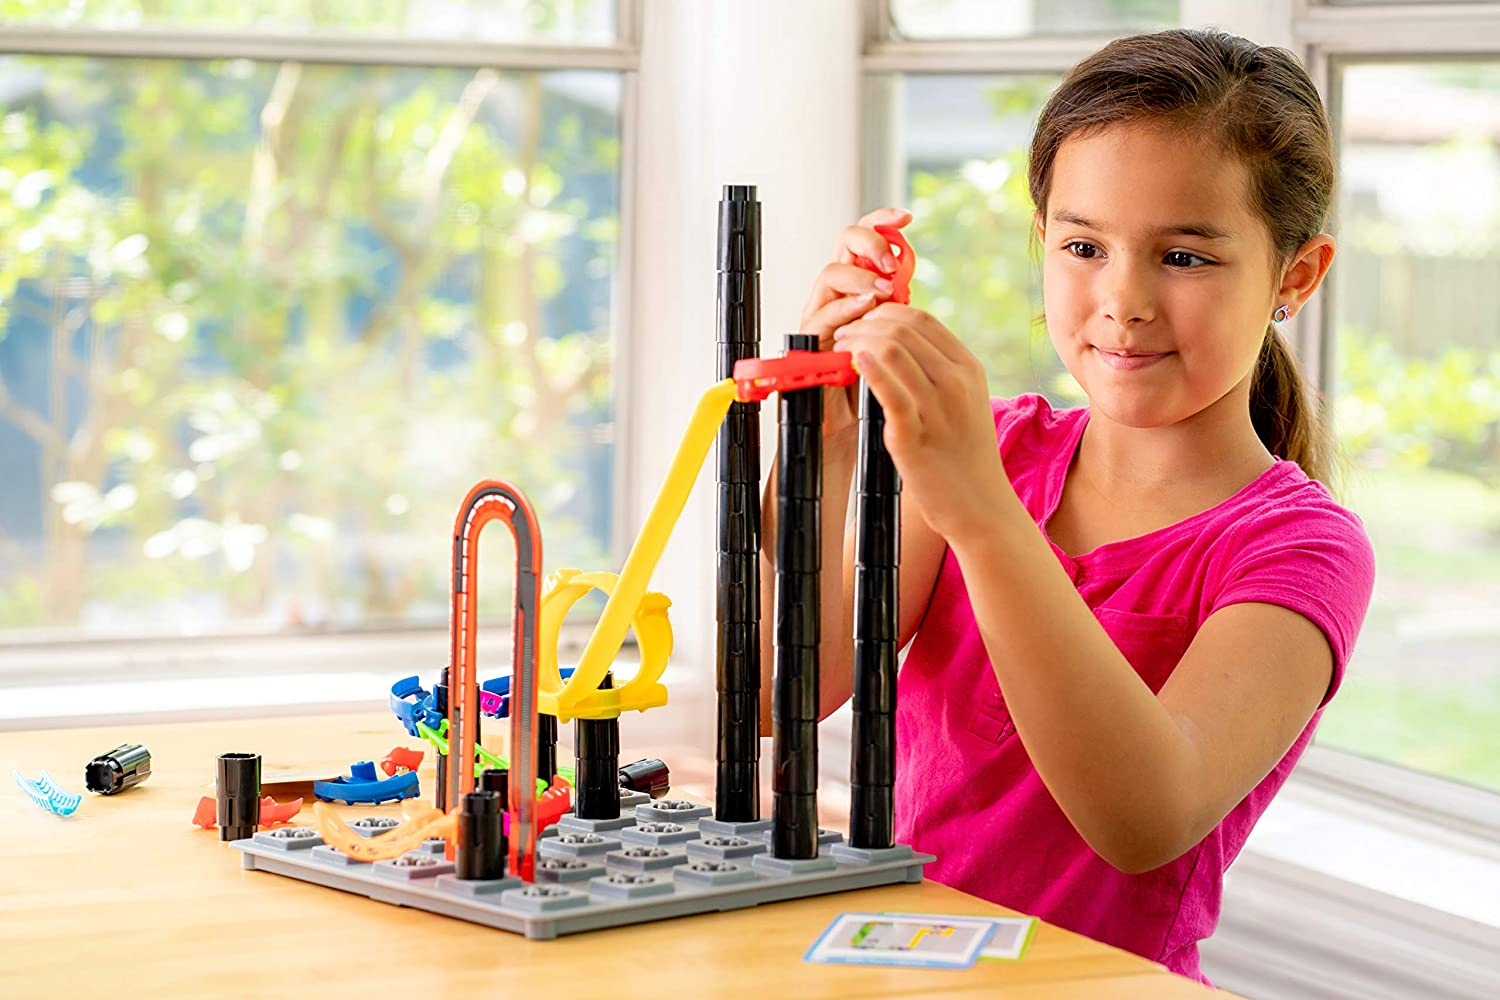 Roller Coaster Challenge{ }($32.99) You can't go wrong with ThinkFun products. This building game is sure to provide hours of fun for young designers and thrill seekers.{ }(Image: Amazon)